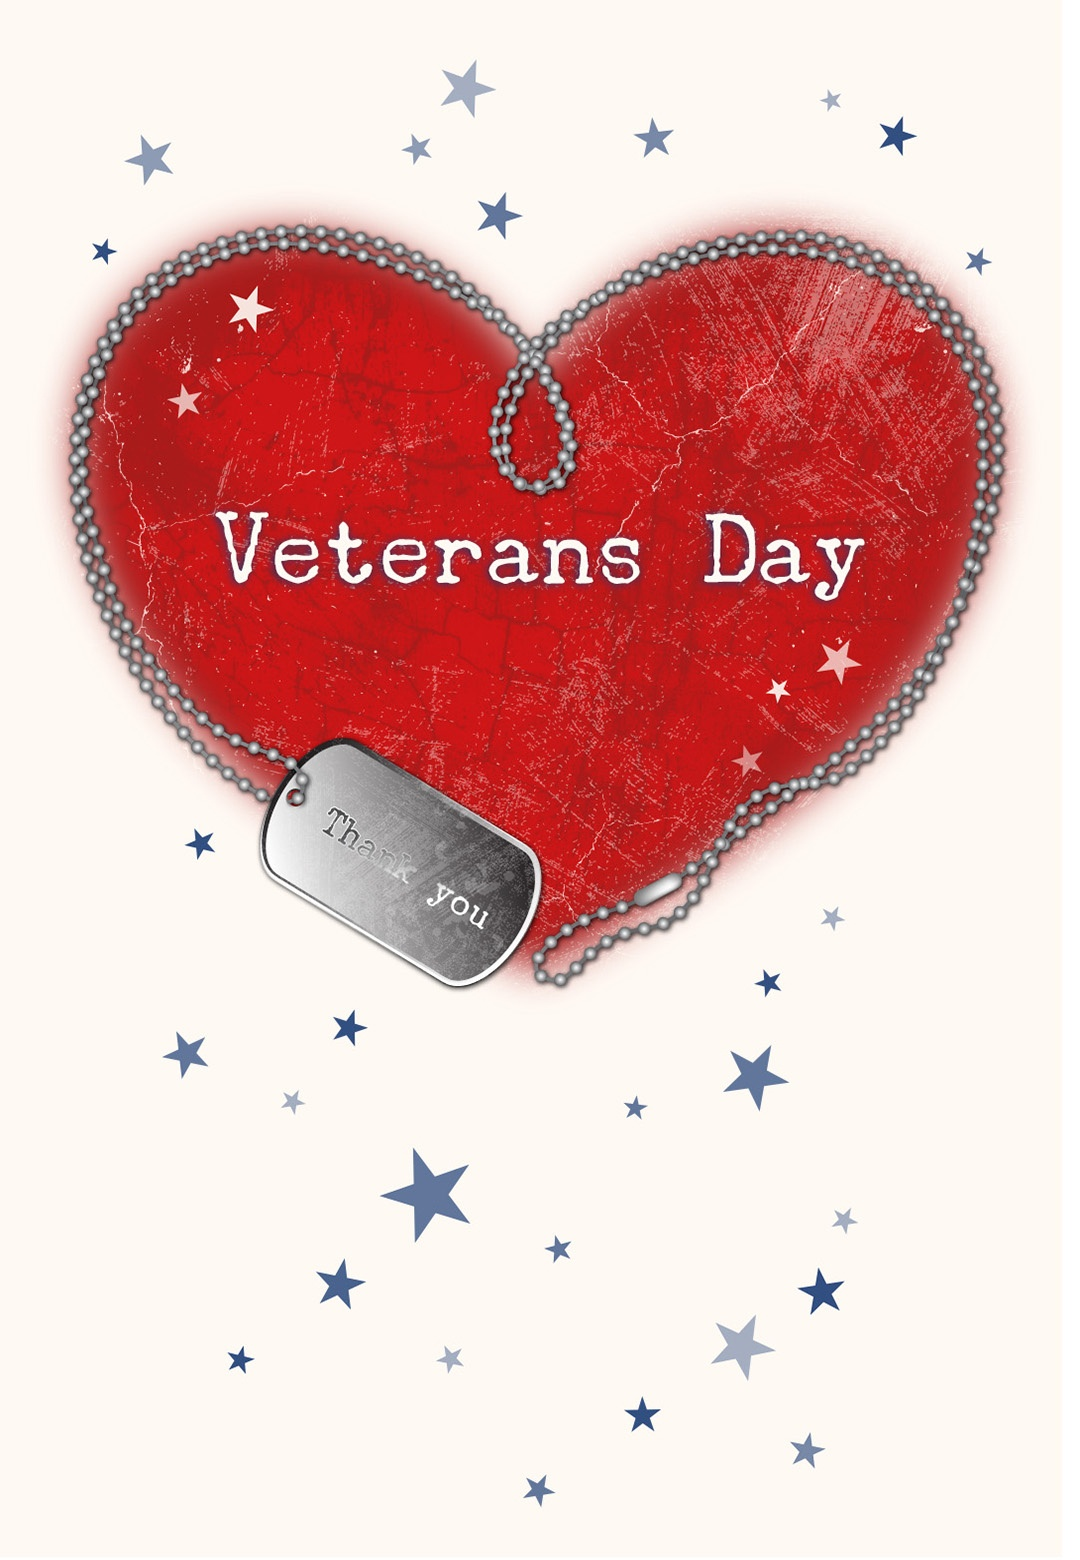 Veterans Day Appreciation - Free Veterans Day Card | Greetings Island - Veterans Day Free Printable Cards